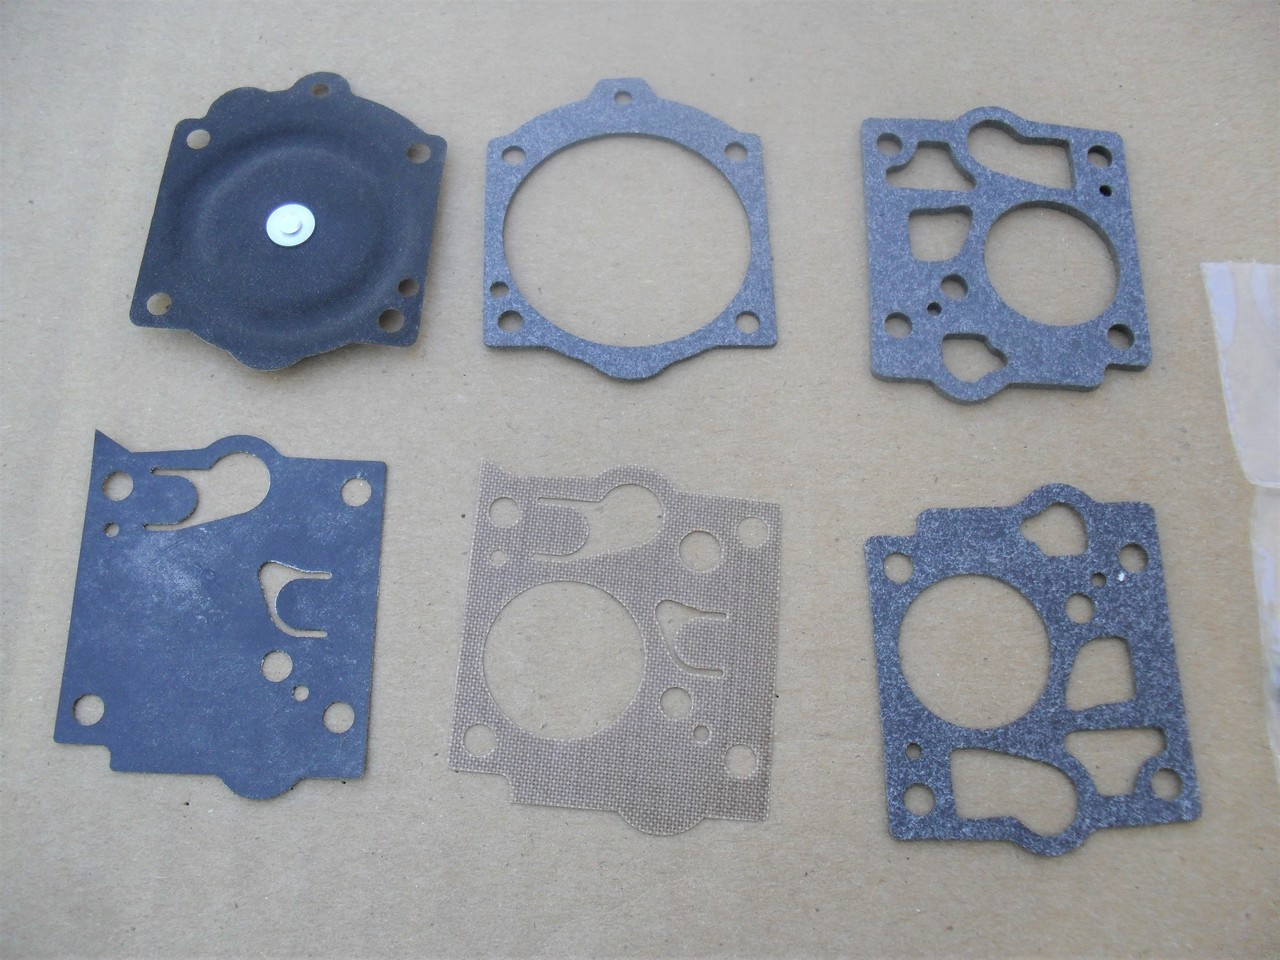 hight resolution of carburetor rebuild kit for jacobsen sno burst snowblower k1 sdc k1sdc k10